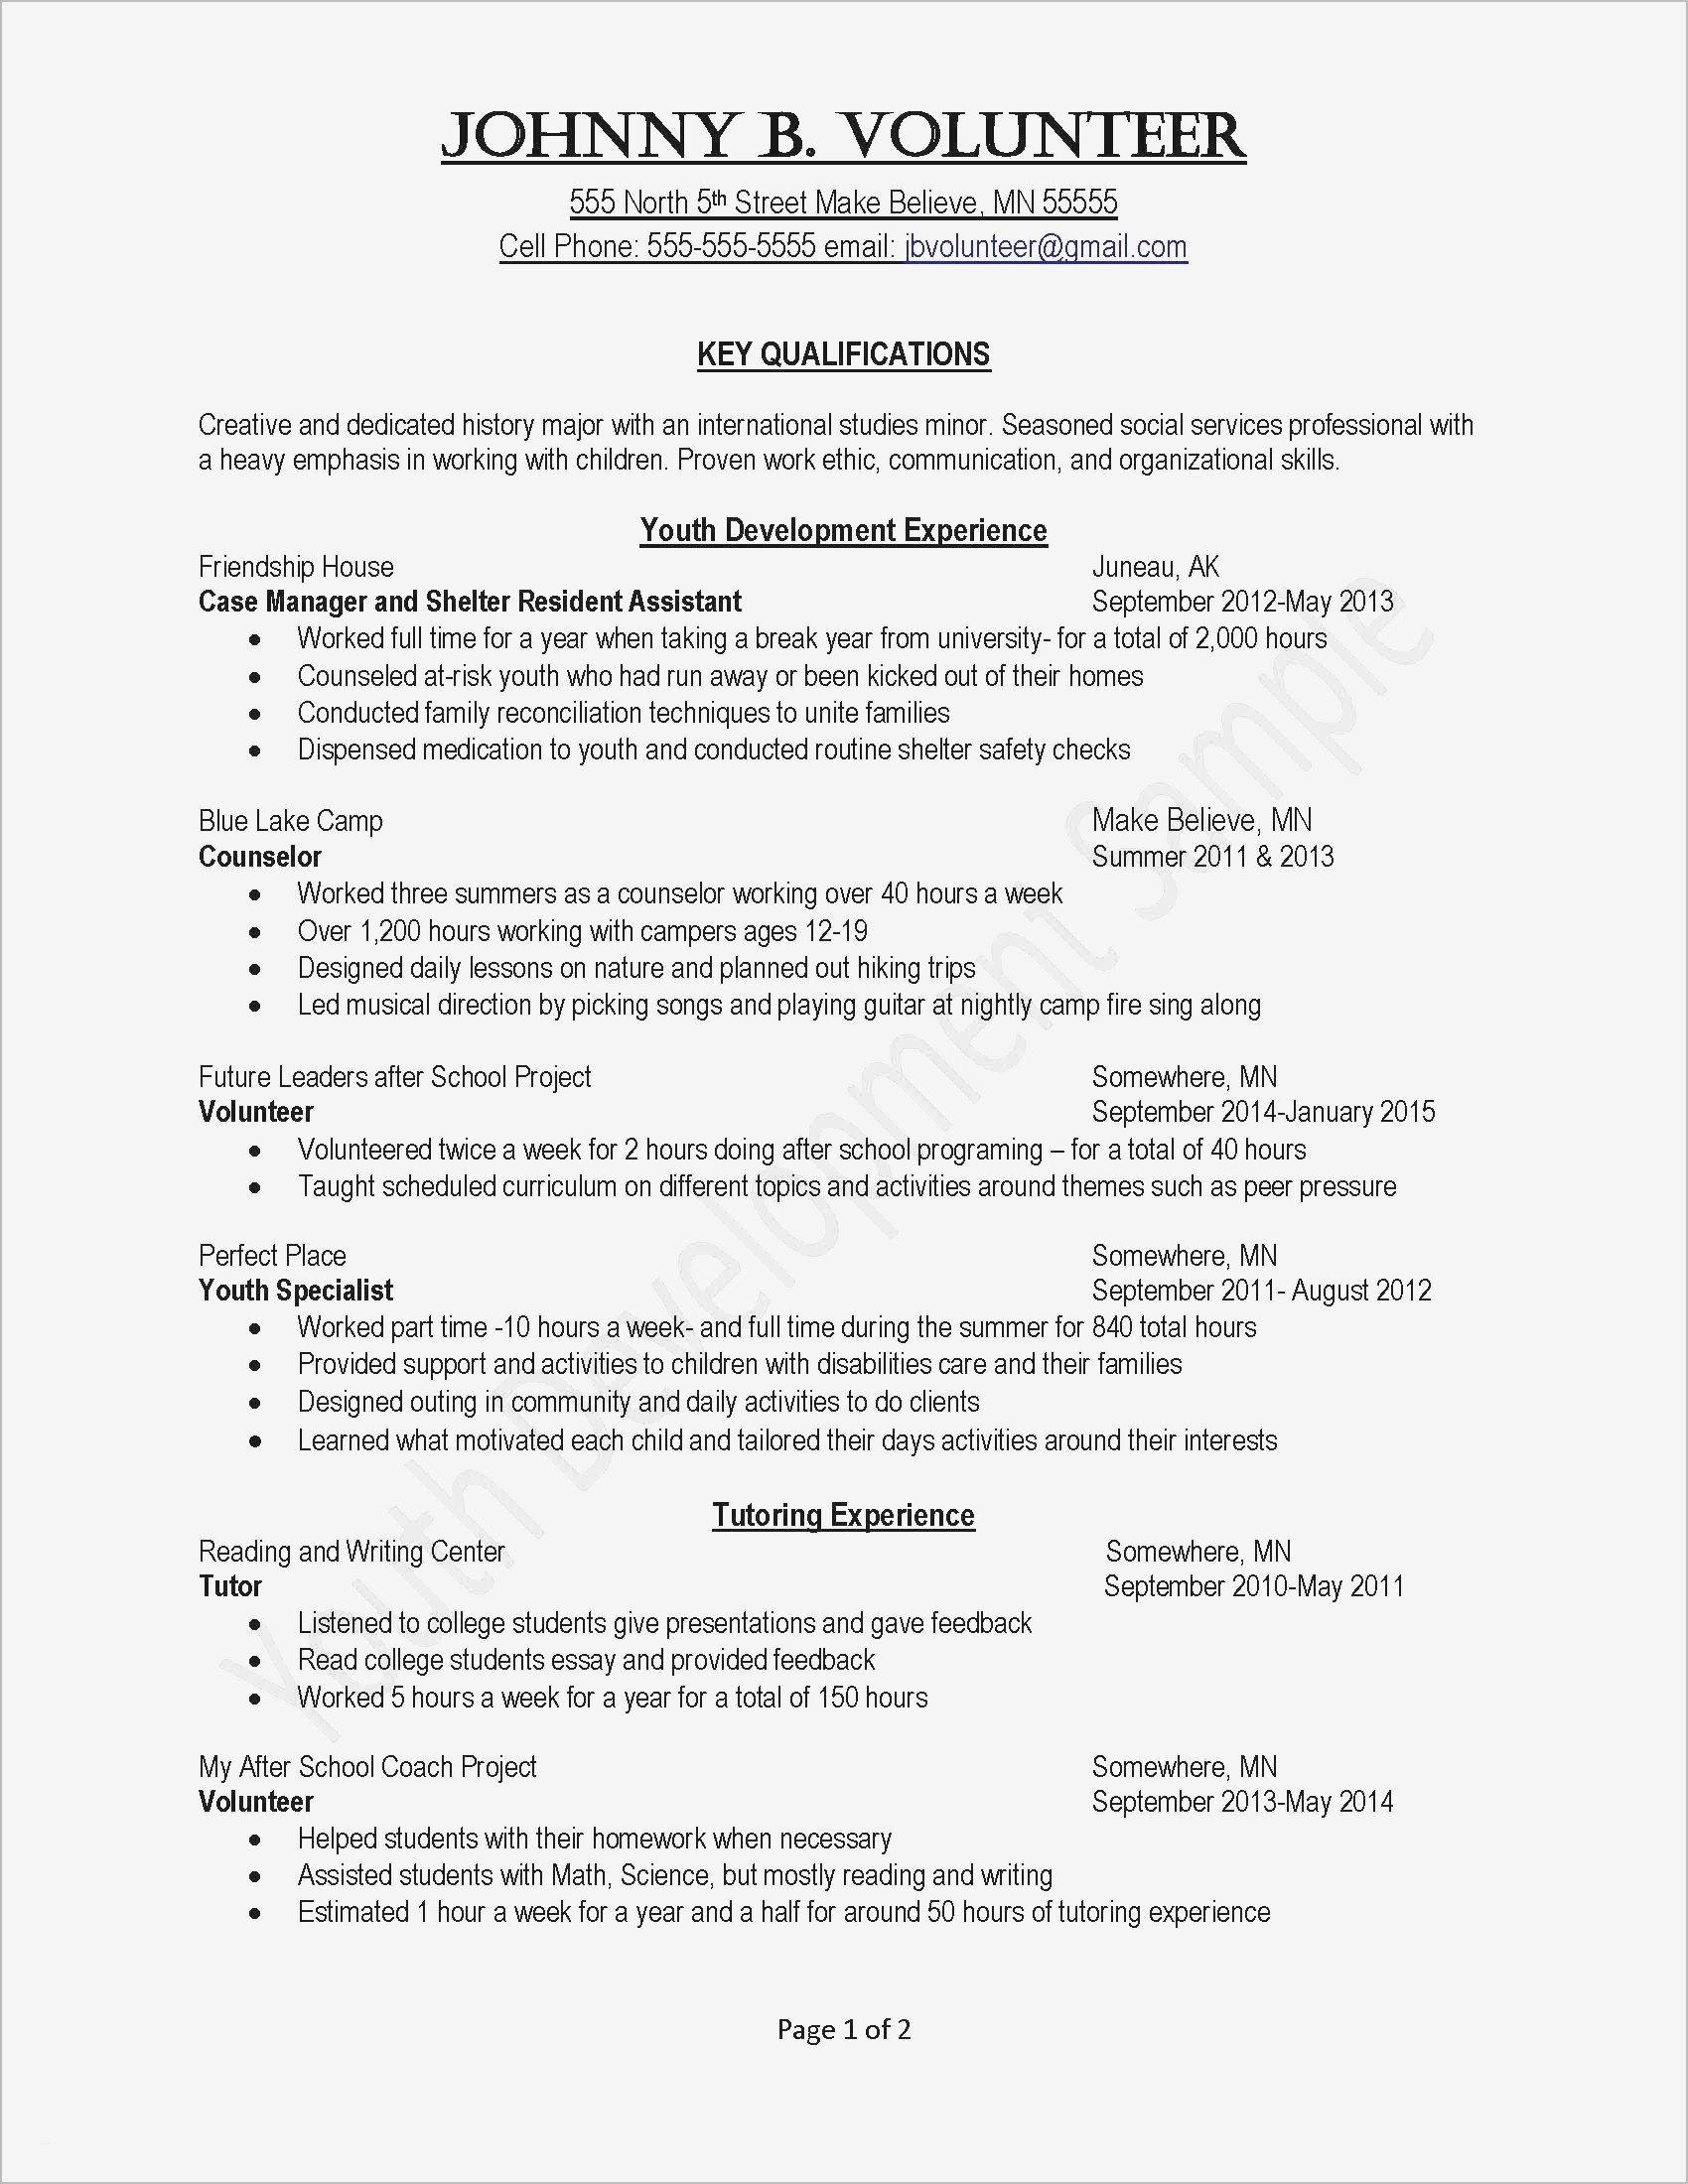 Cover Letter Template Printable - Copy A Cover Letter for A Job Application Beautiful Elegant Job